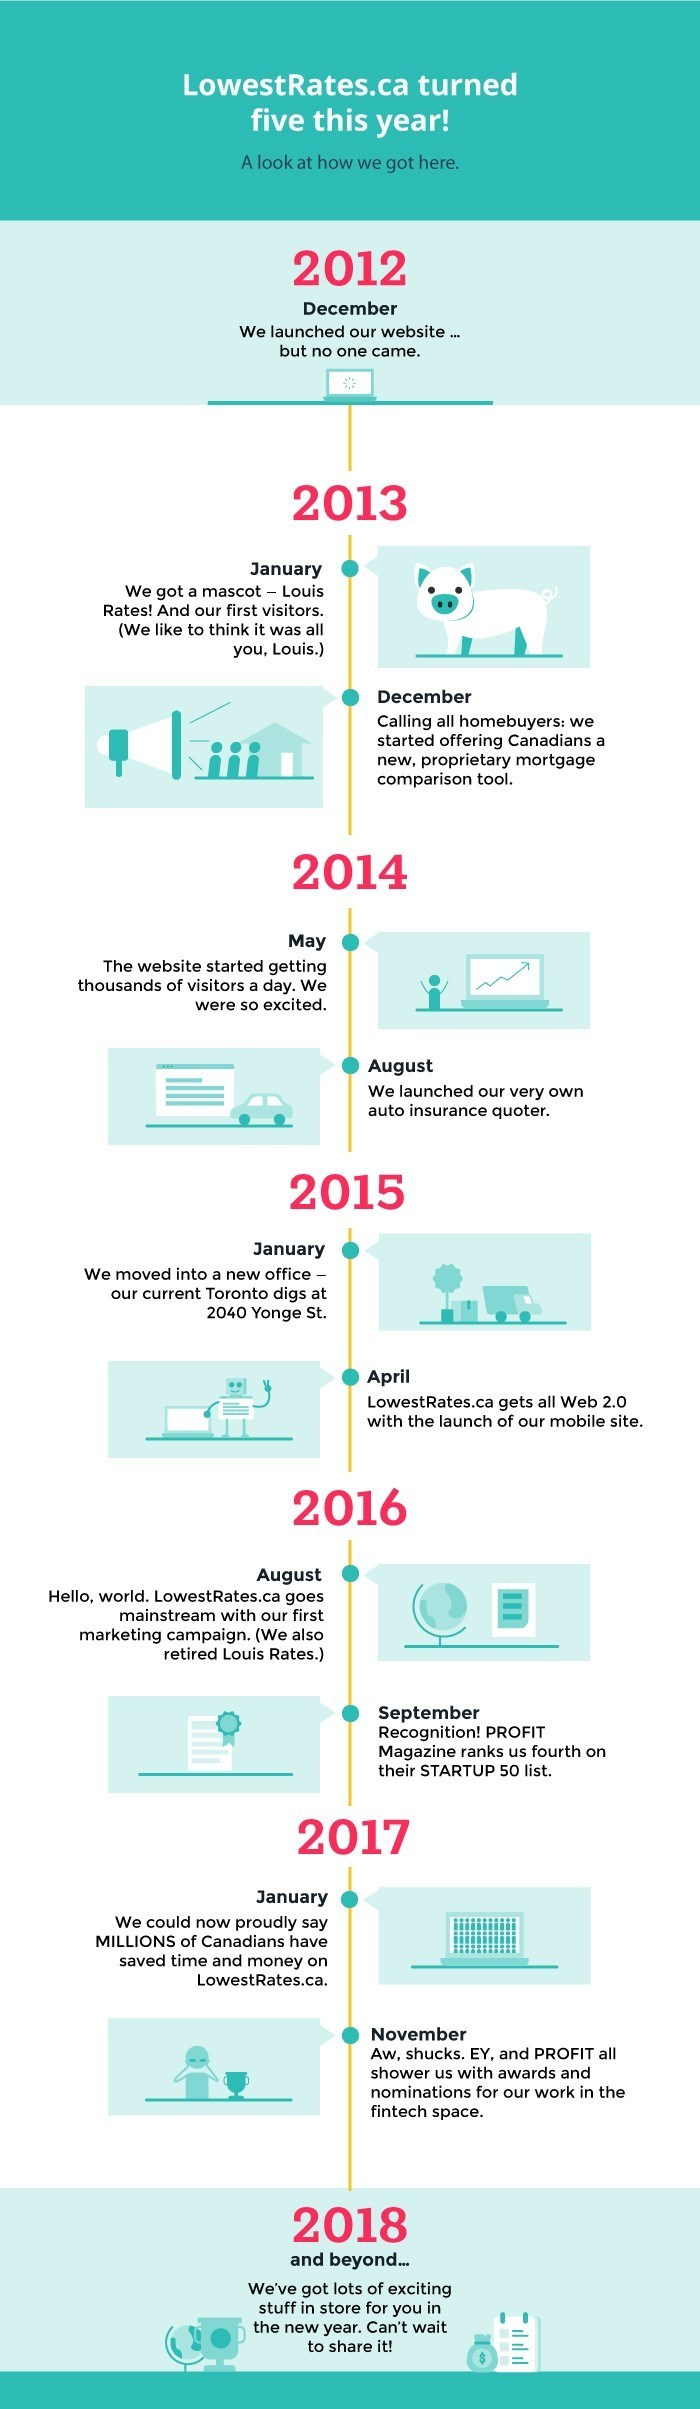 LowestRates.ca 5 Year Timeline (CNW Group/LowestRates.ca)